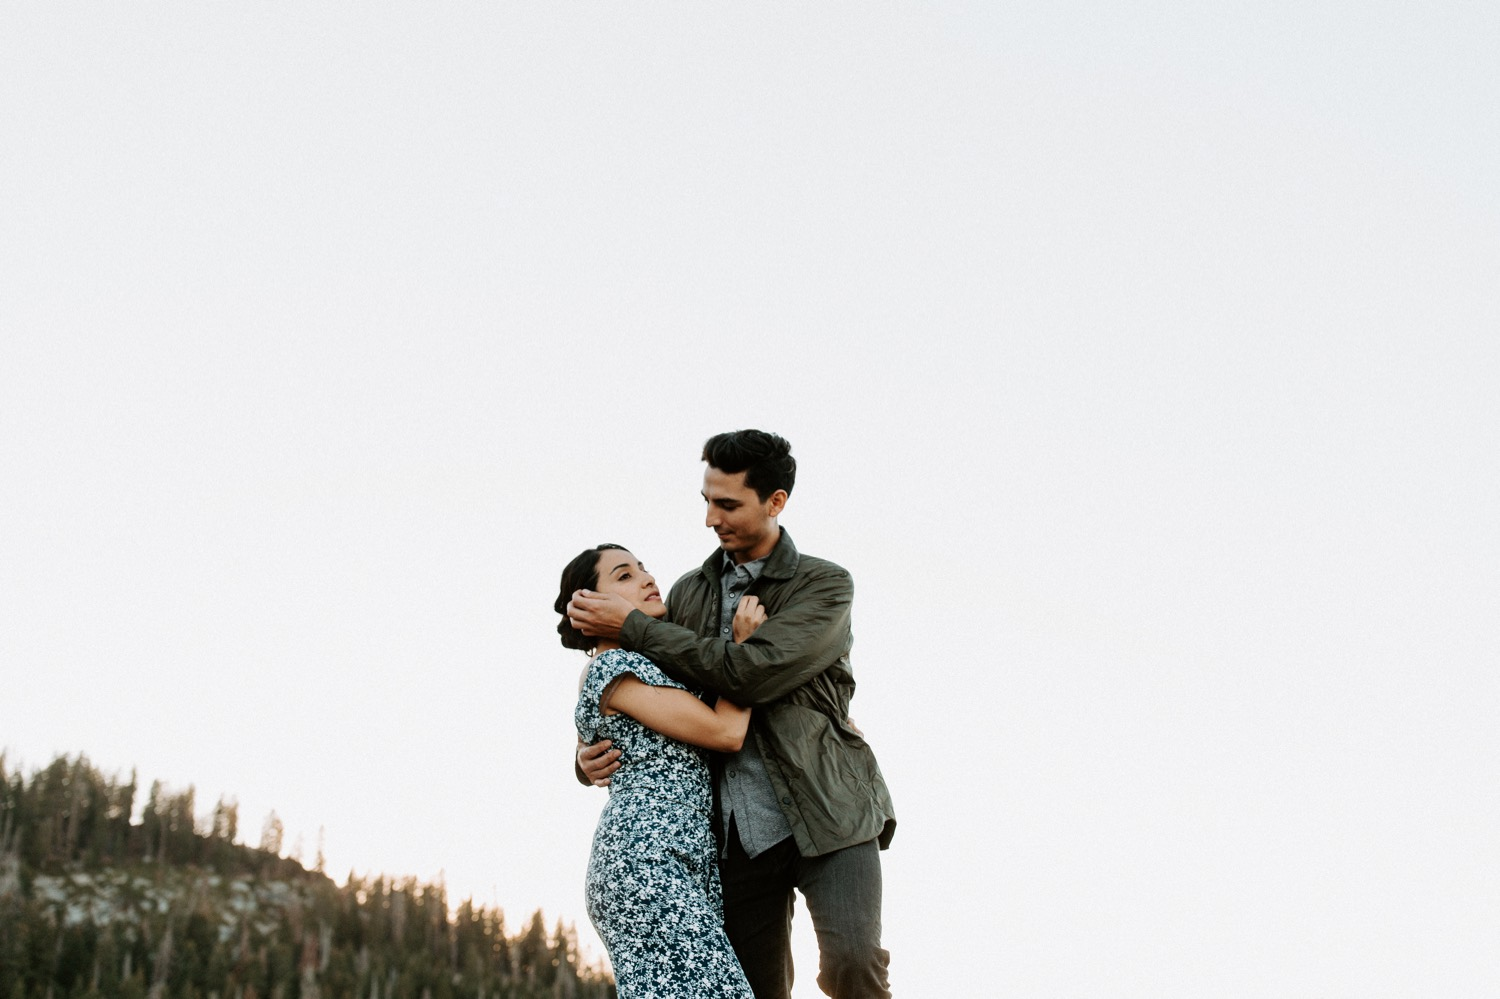 24_Yosemite-National-Park-Engagement-Session-Emily-Magers-Photography60.jpg